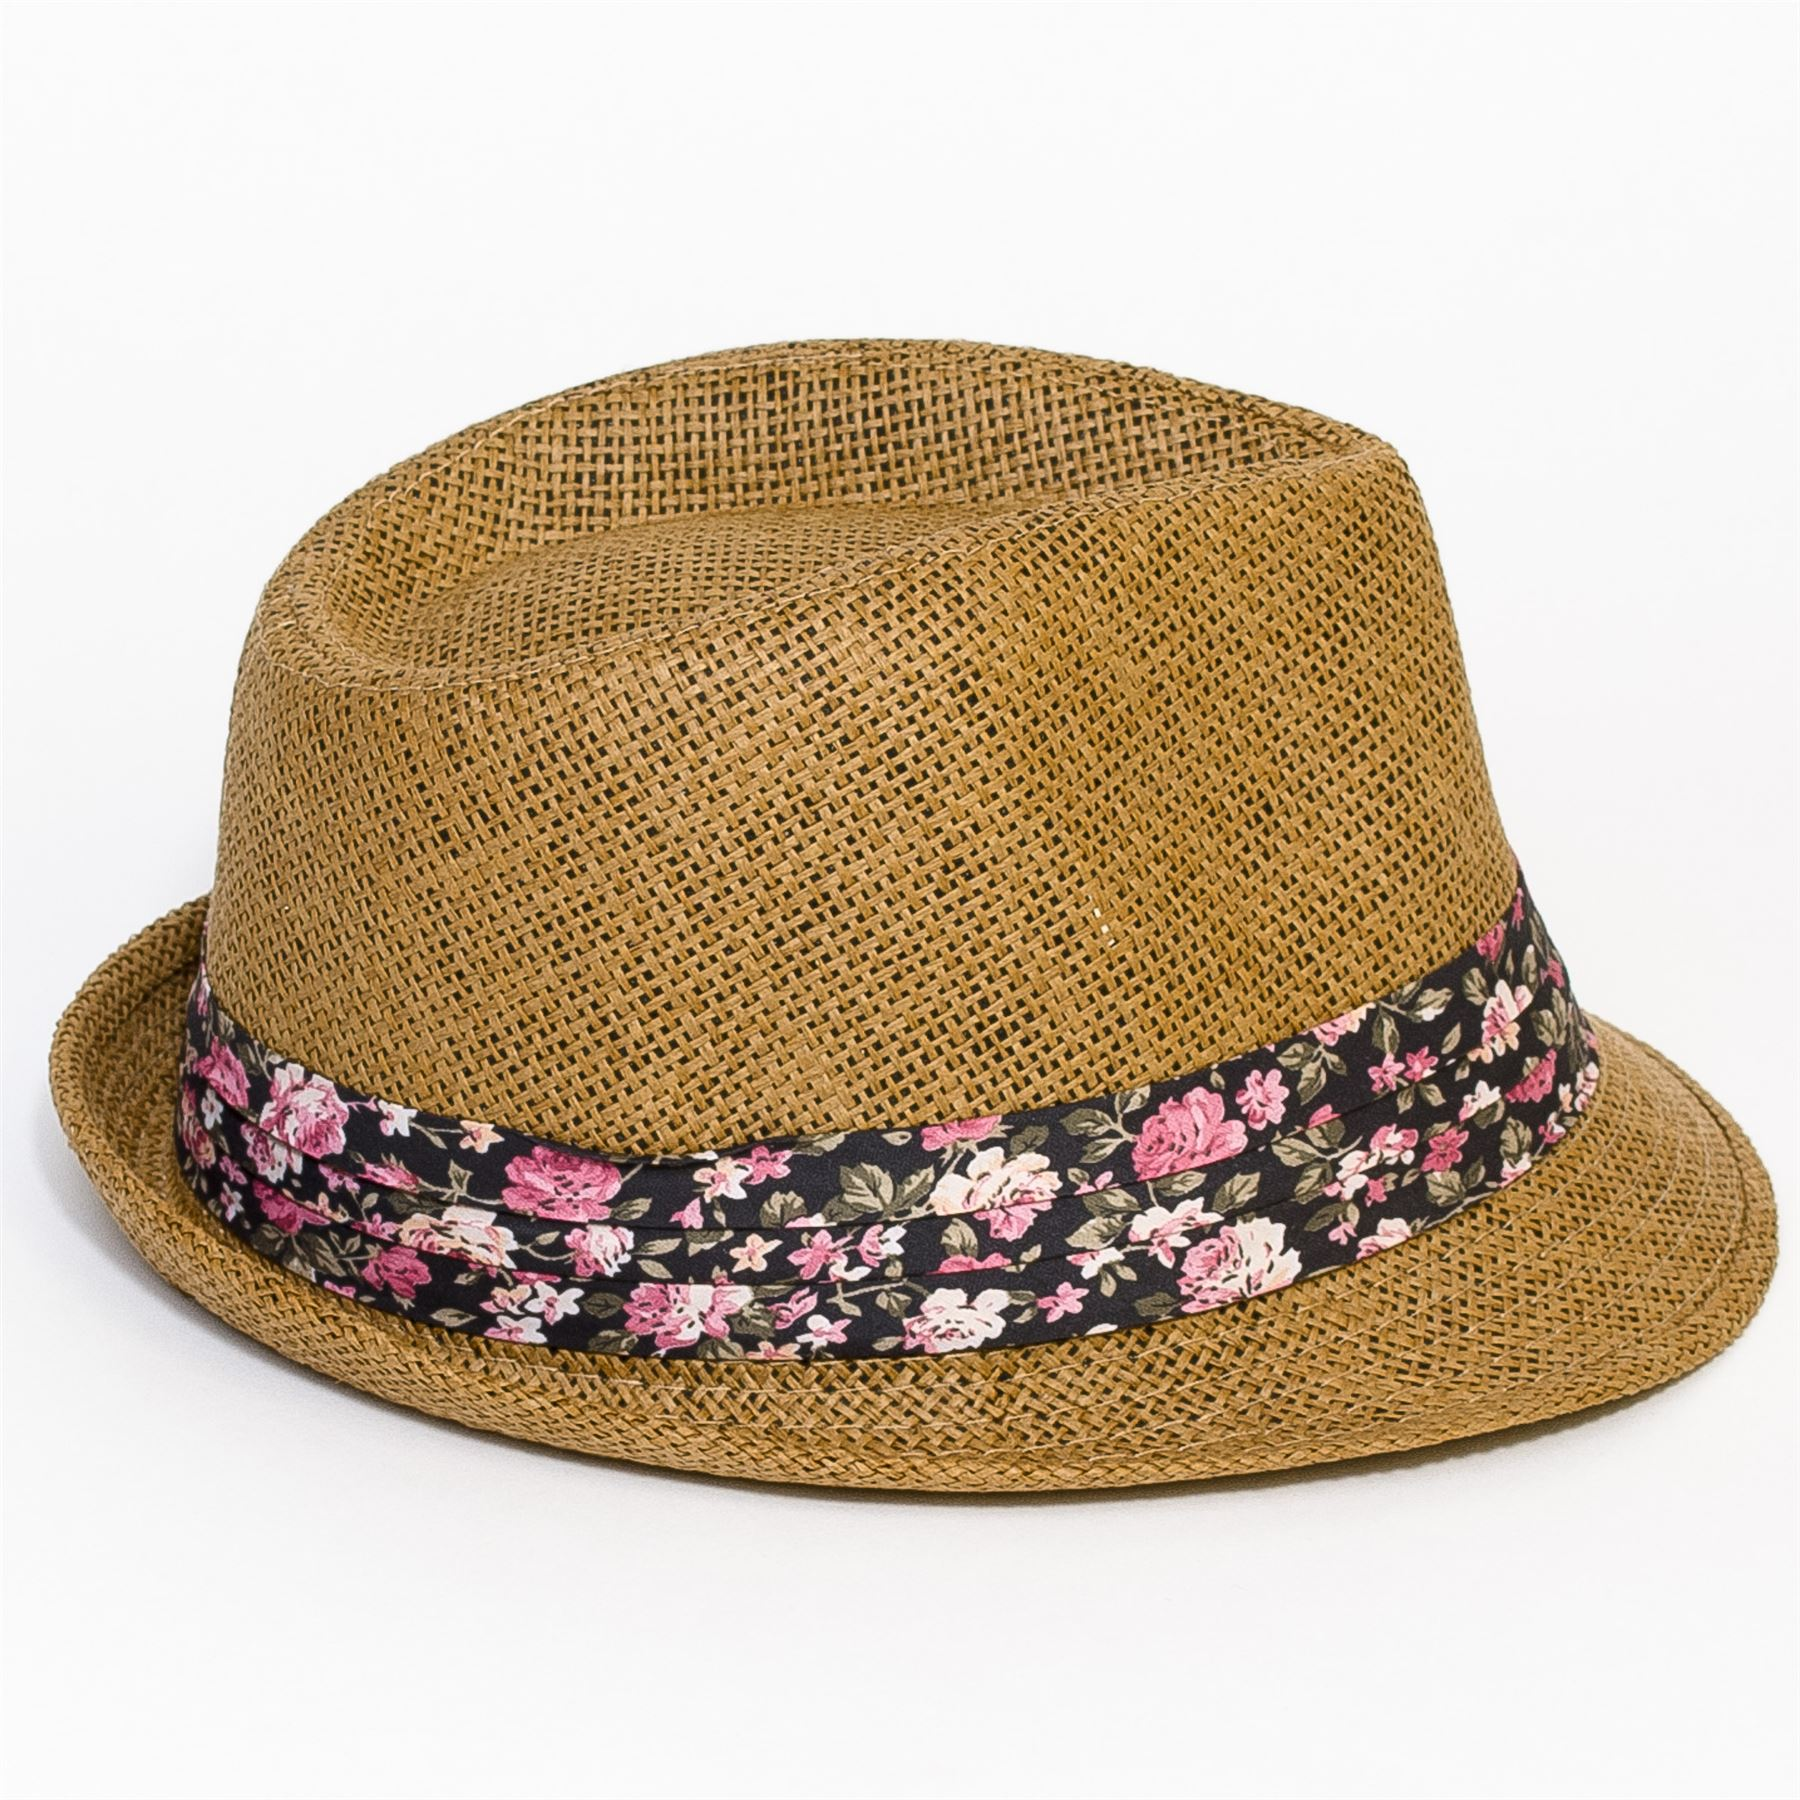 Trilby Hat with Flower Printed Band